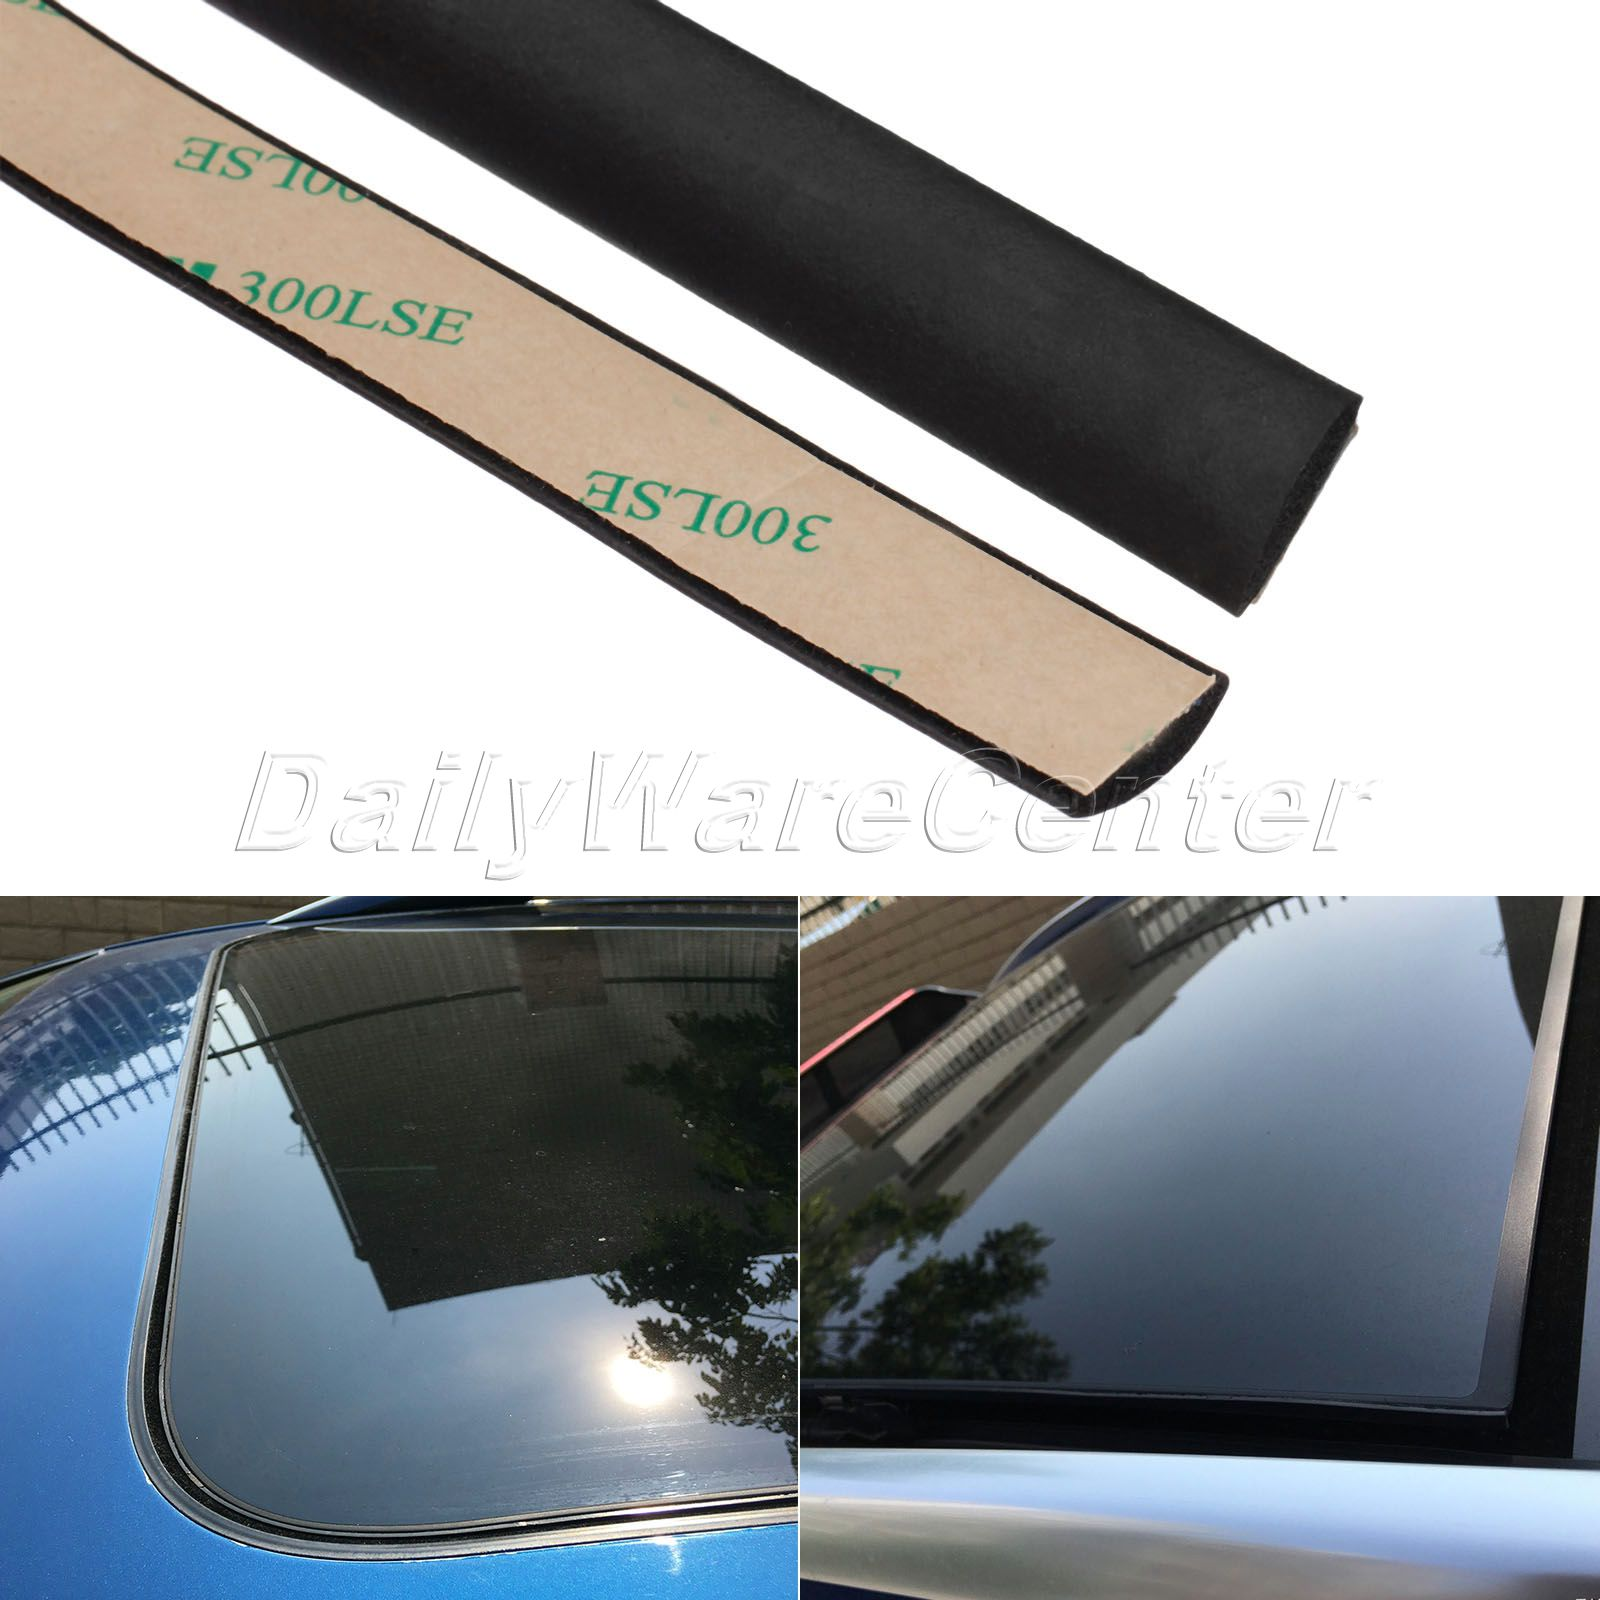 5 Meter Waterproof Rubber Sealing Strips Trim For Auto Car Front Rear Windshield Sunroof Triangular Window Edge Weatherstrip